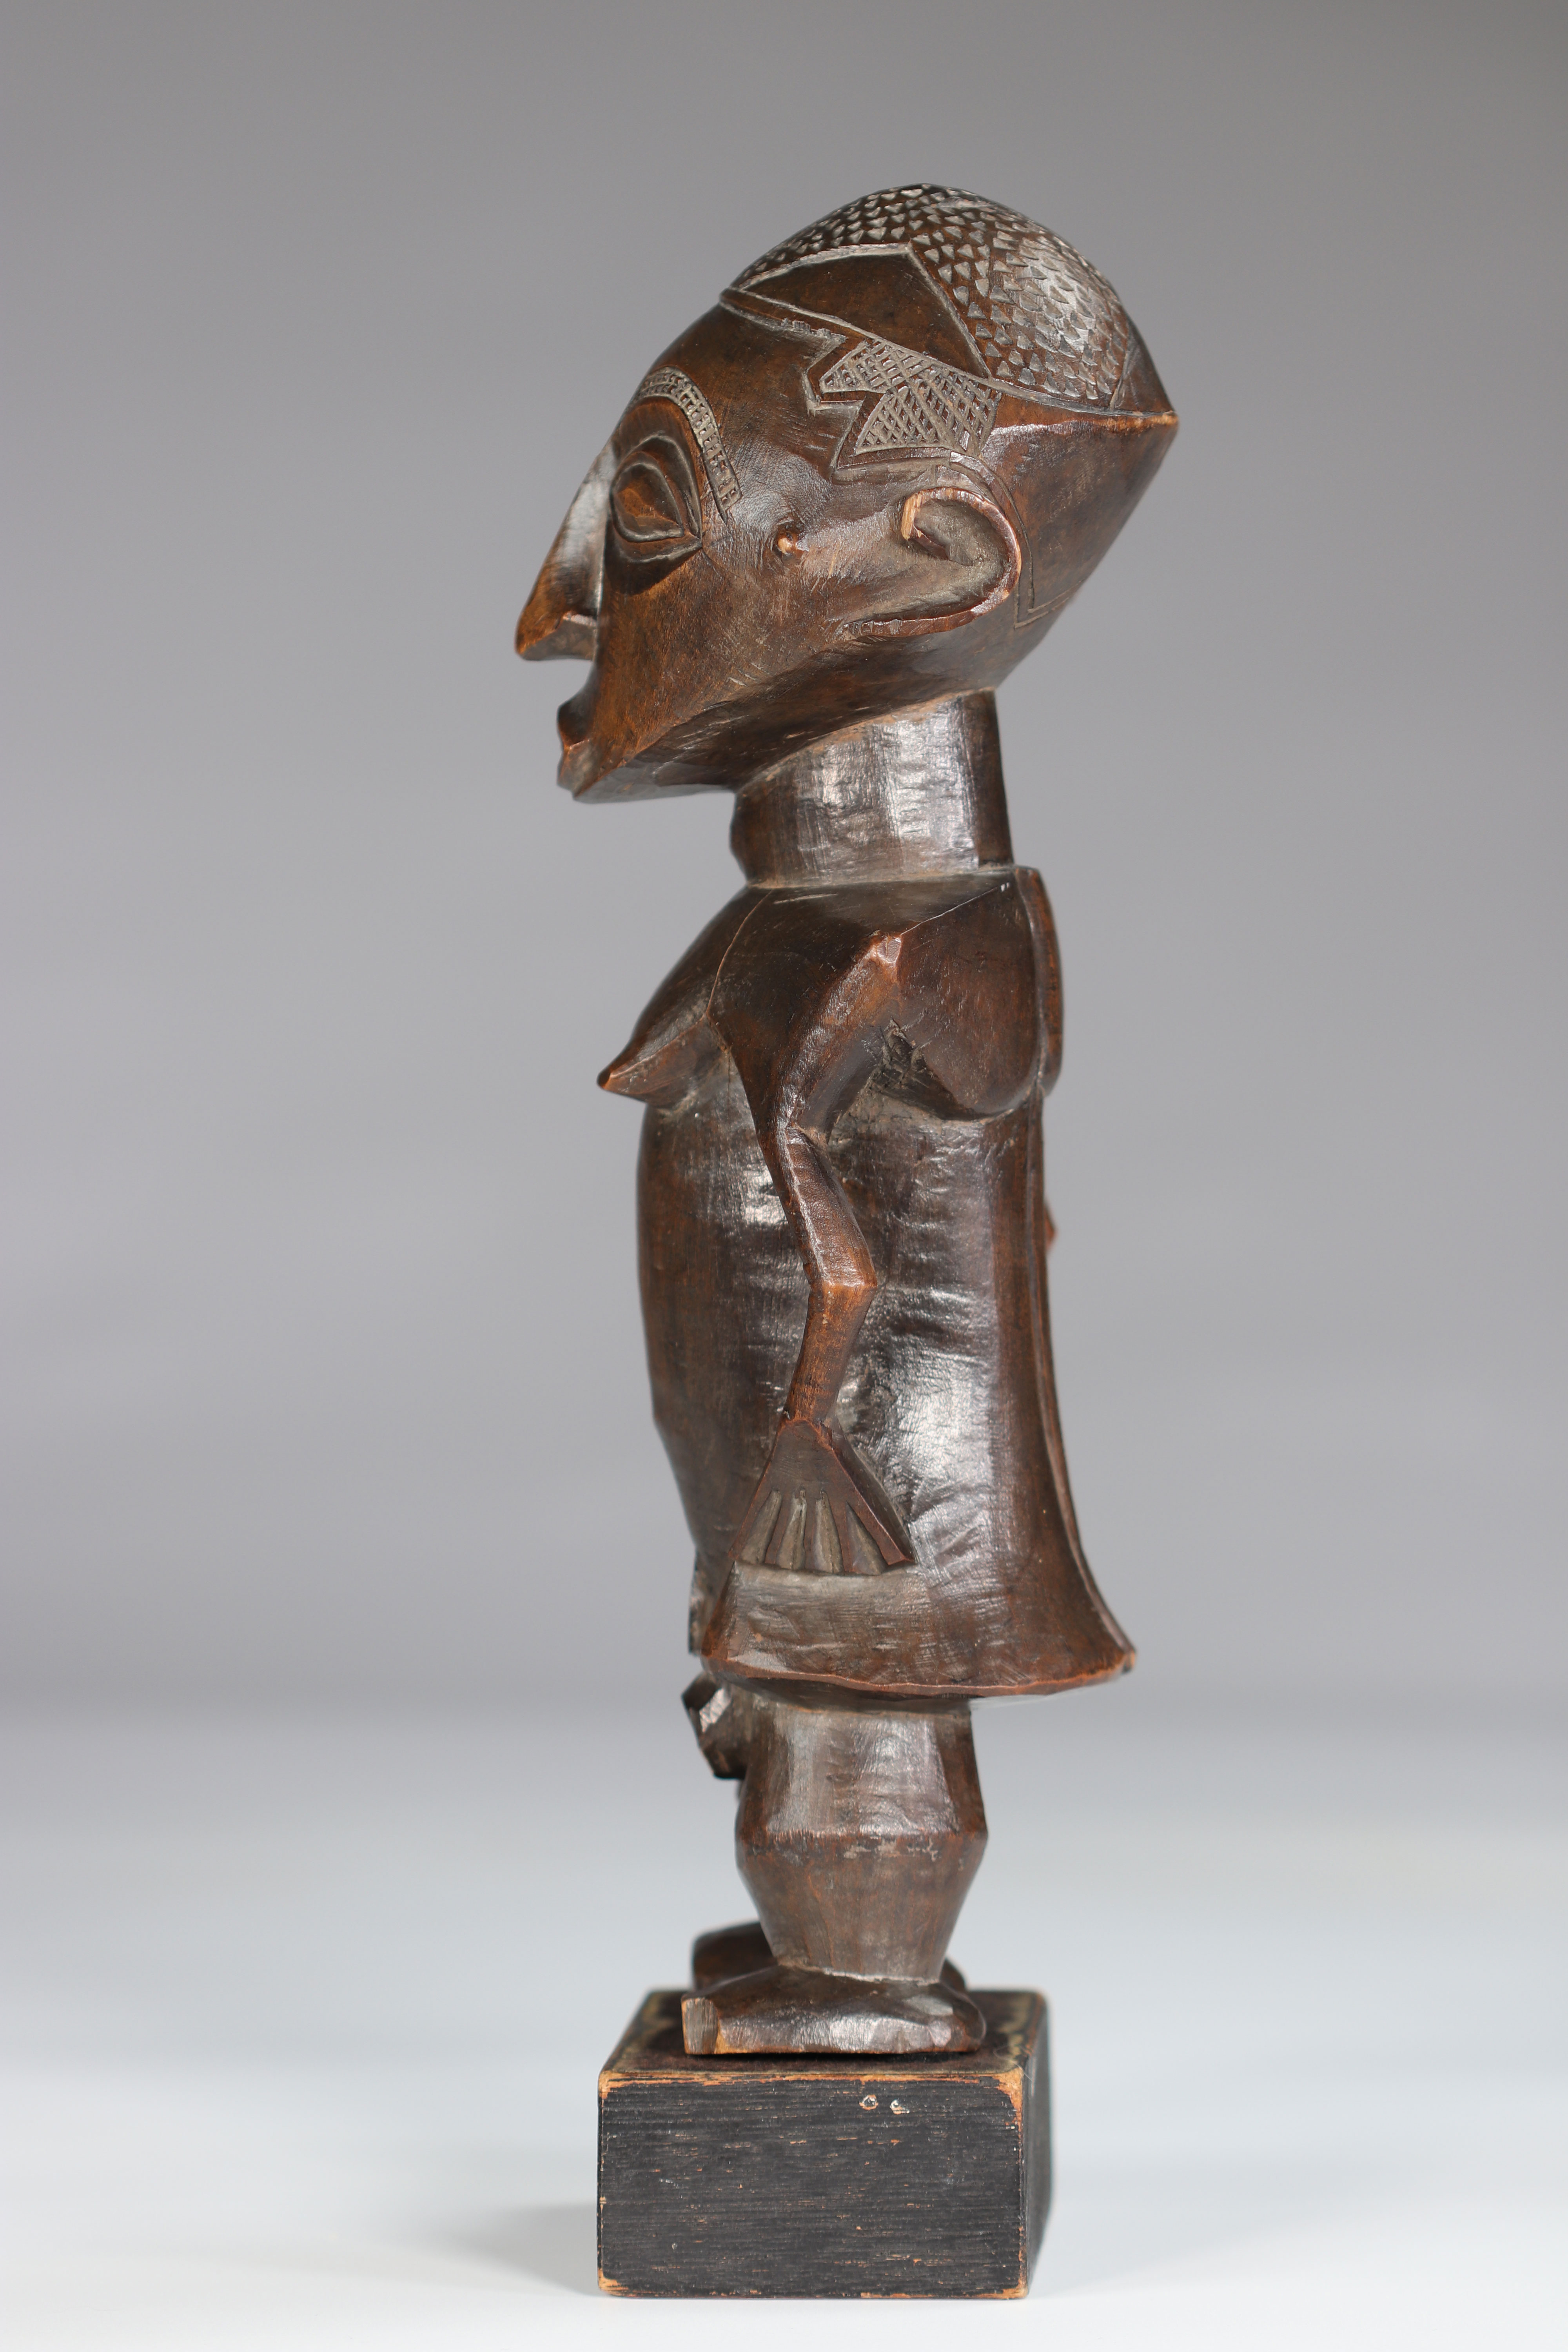 Rare Statue Wongo ca 1930 prov :, B. De Bruyn Netherlands. This high quality sculpture is distinguis - Image 4 of 5